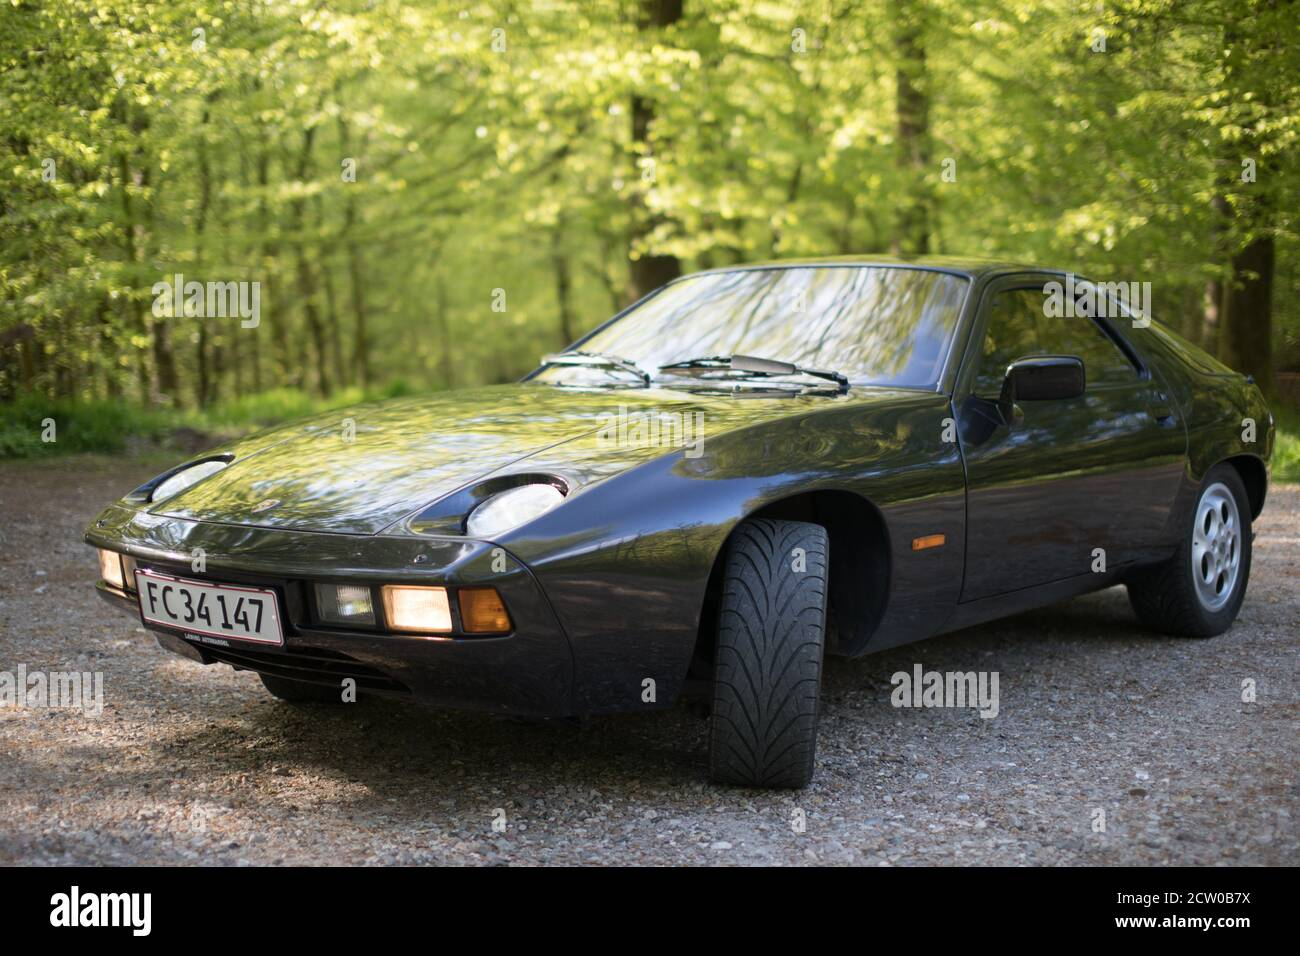 porsche-928-from-1979-the-car-was-meant-